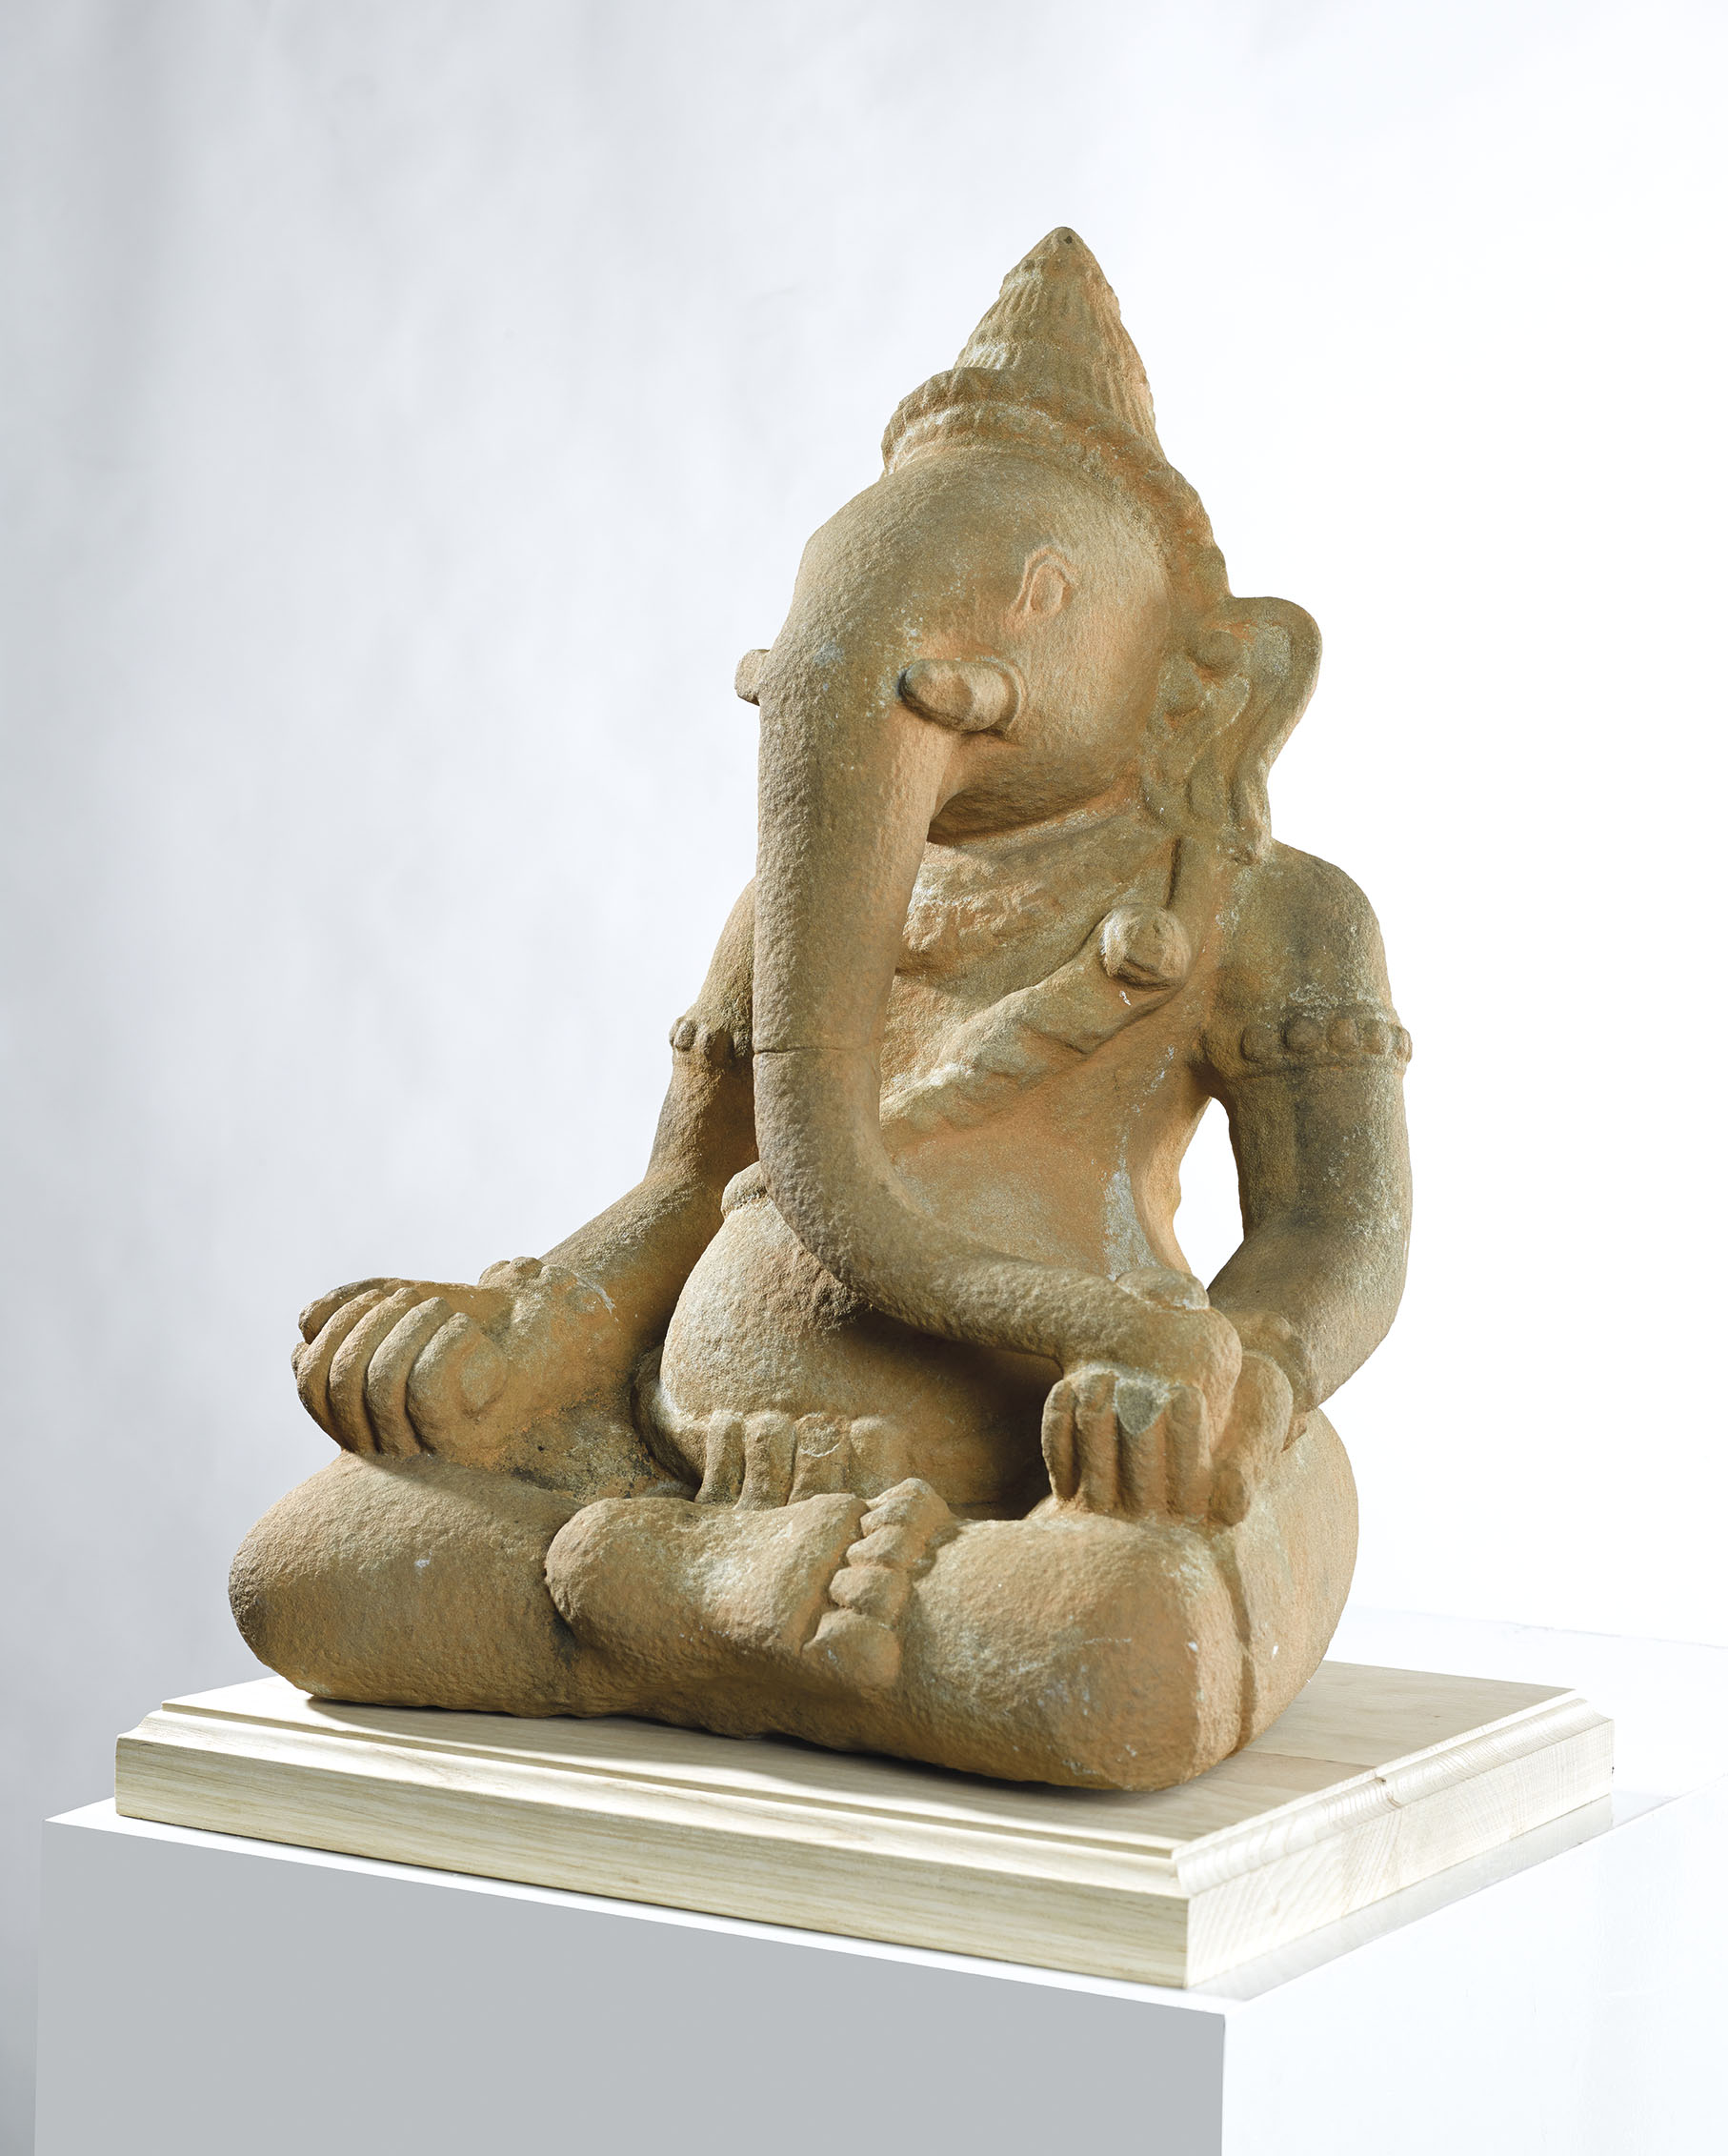 A STONE FIGURE OF GANESH